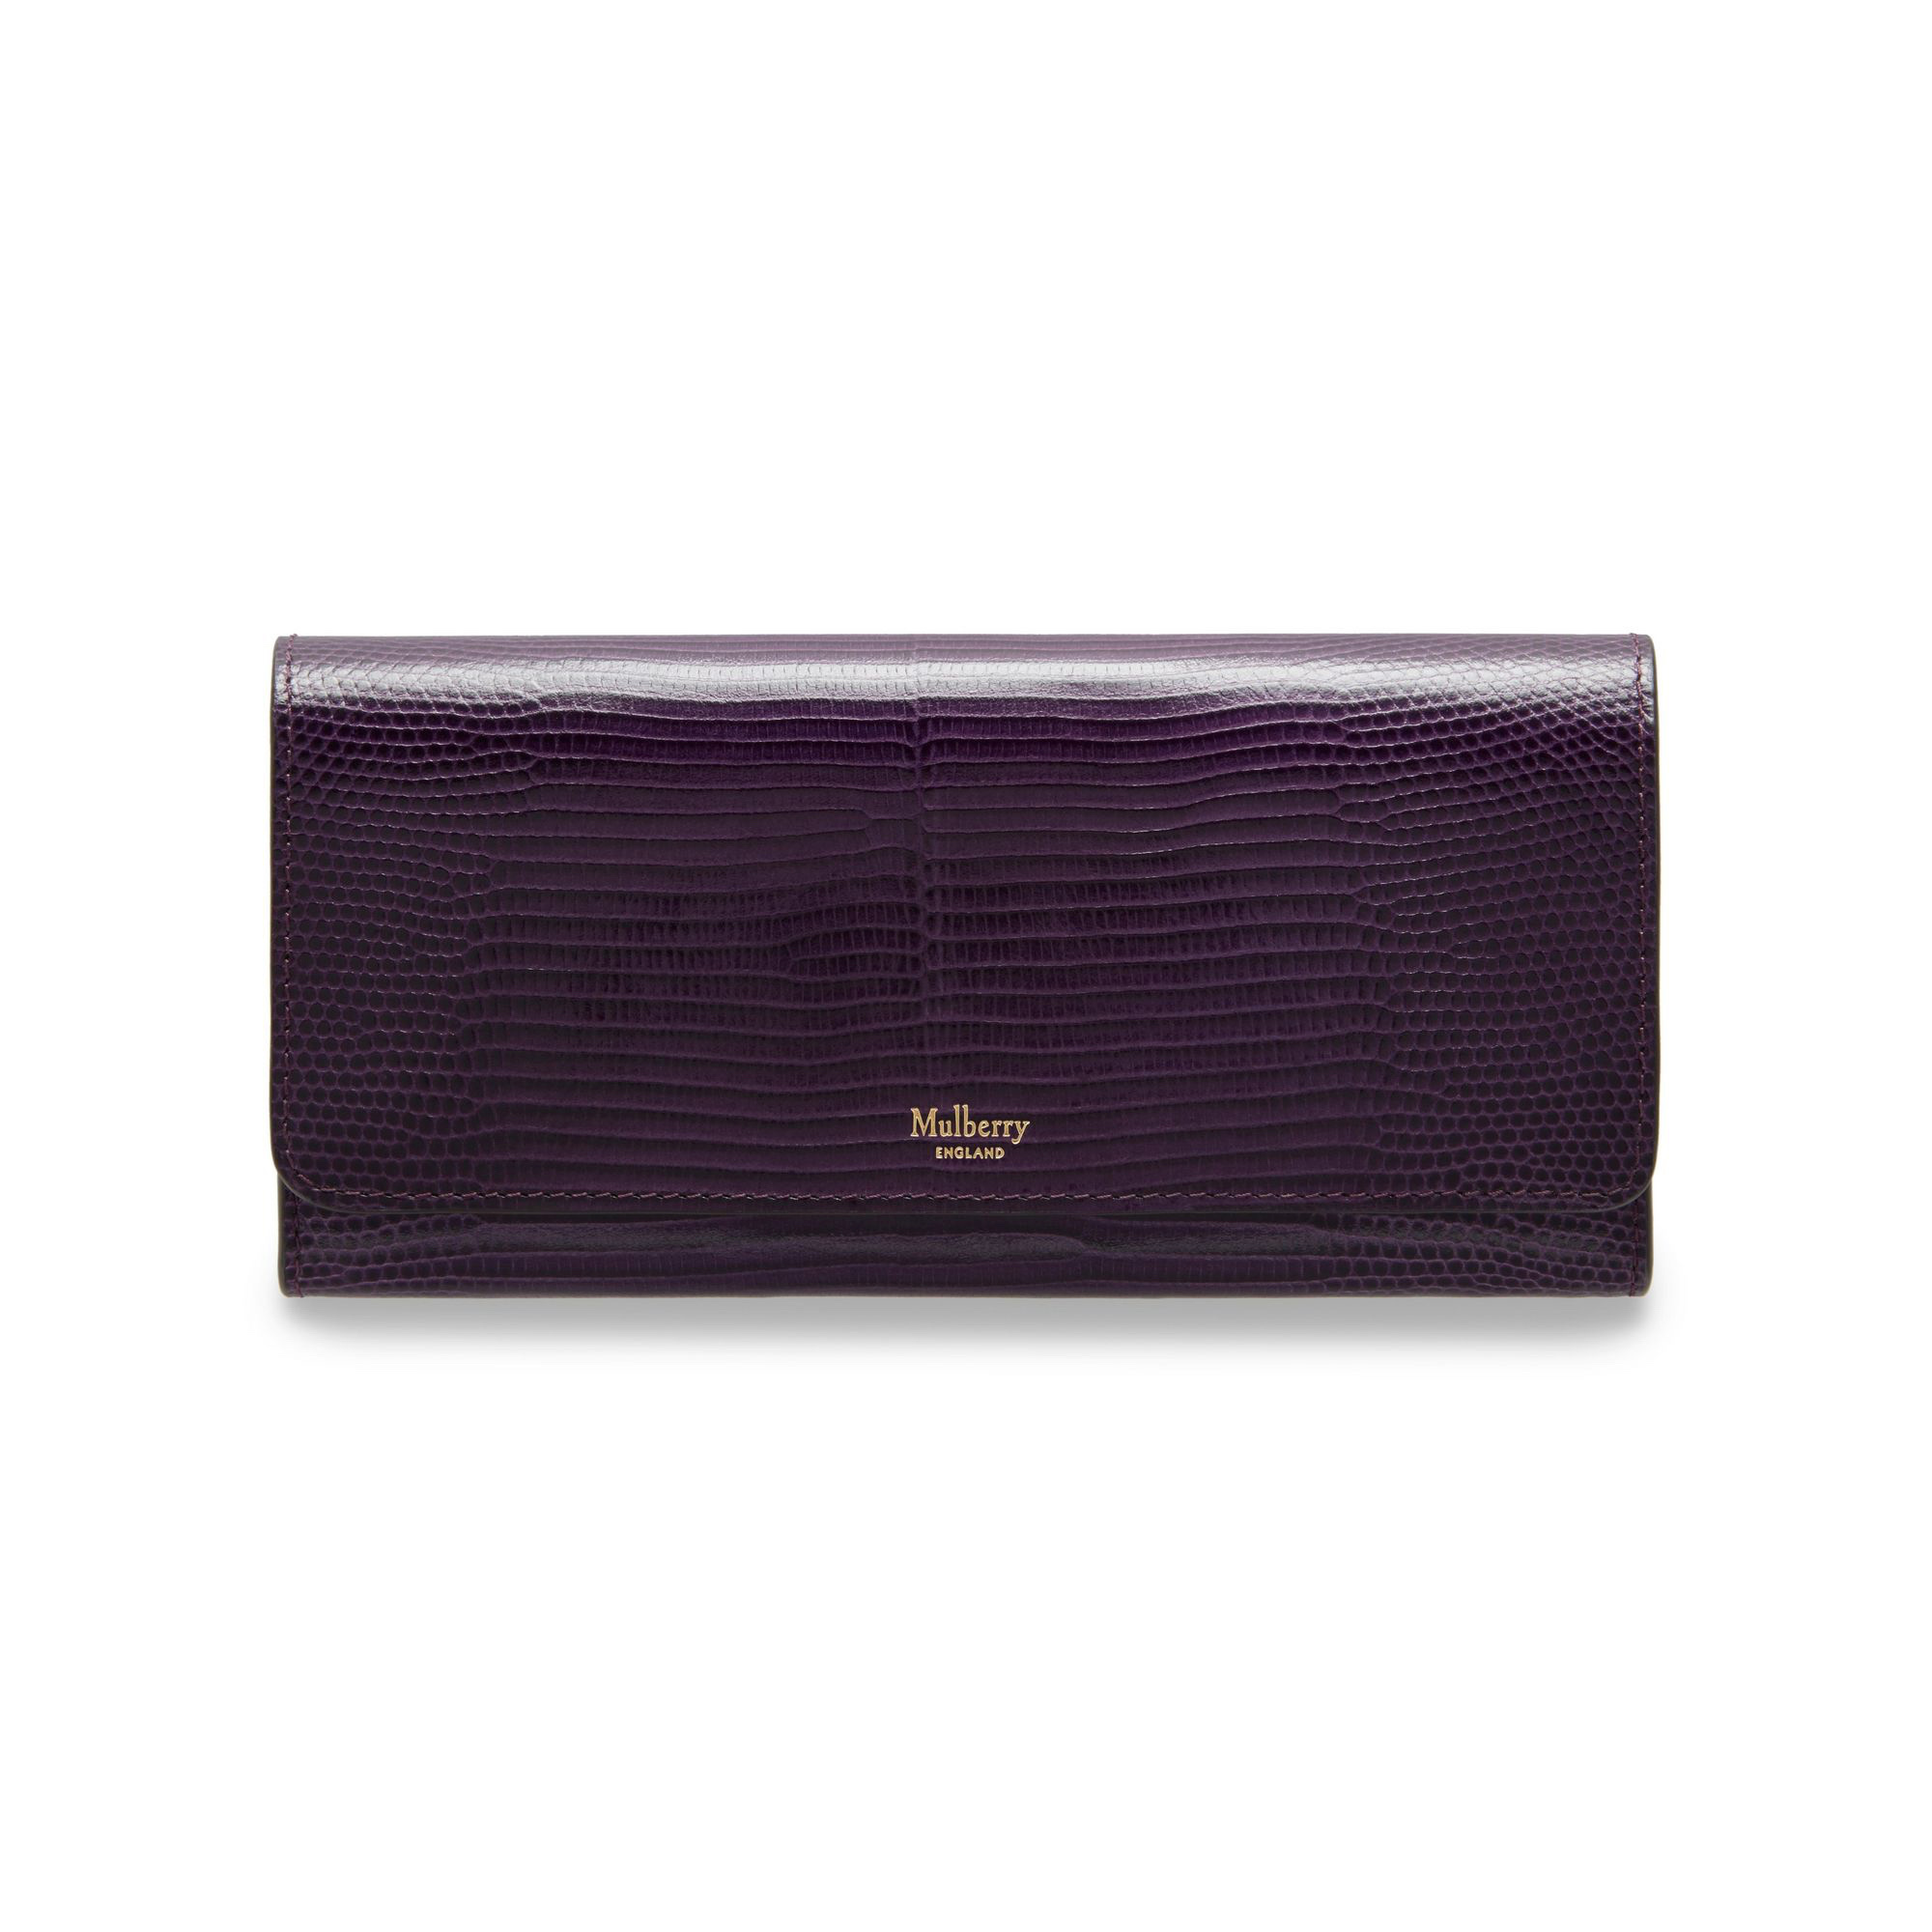 COMING SOON MULBERRY ENGLAND_f0111683_14201482.jpg